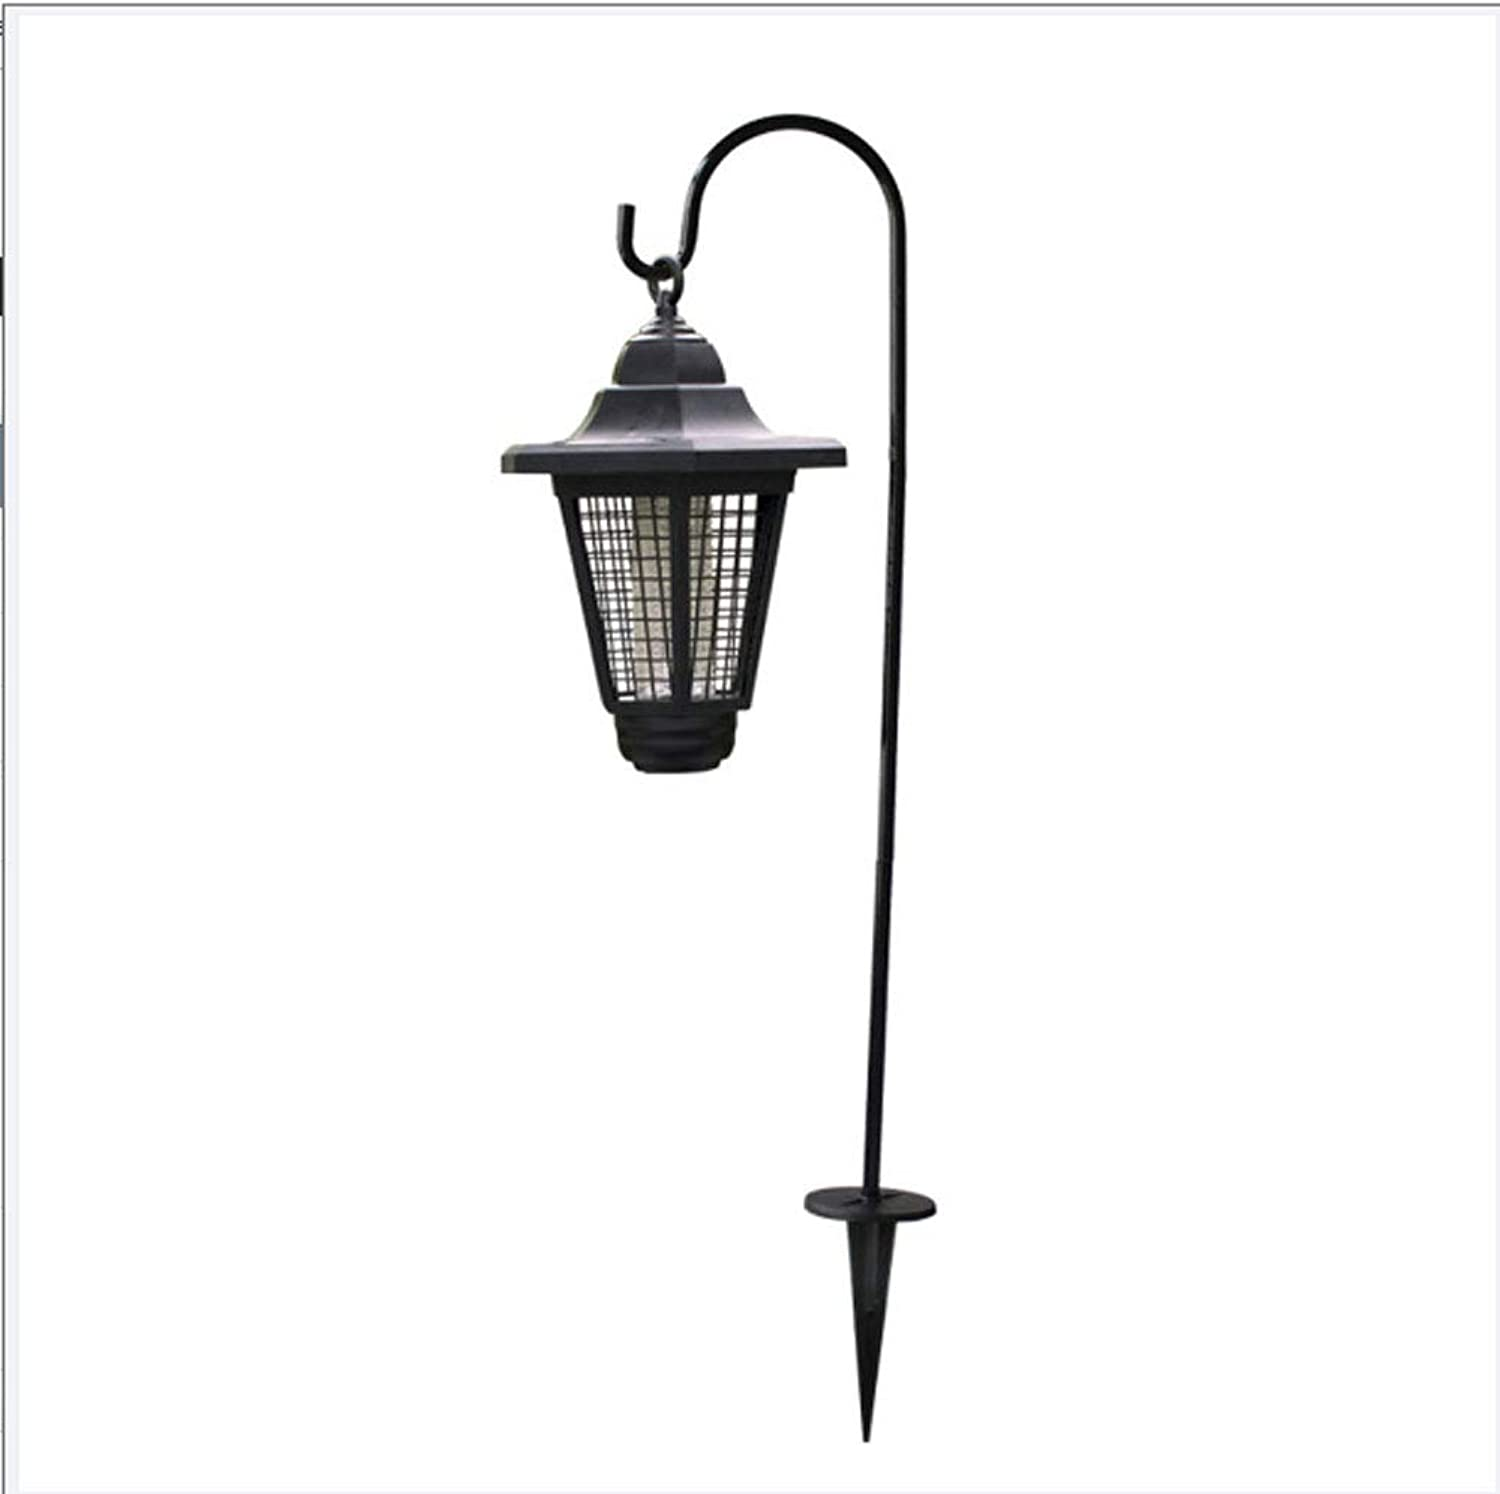 Mosquito Killer Lamp,Solar LED Outdoor Mosquito Killer Lamp Waterproof UV Light HighVoltage Grid Whole Night Predect for Bug Zapper, Insect Killer,Plugintype